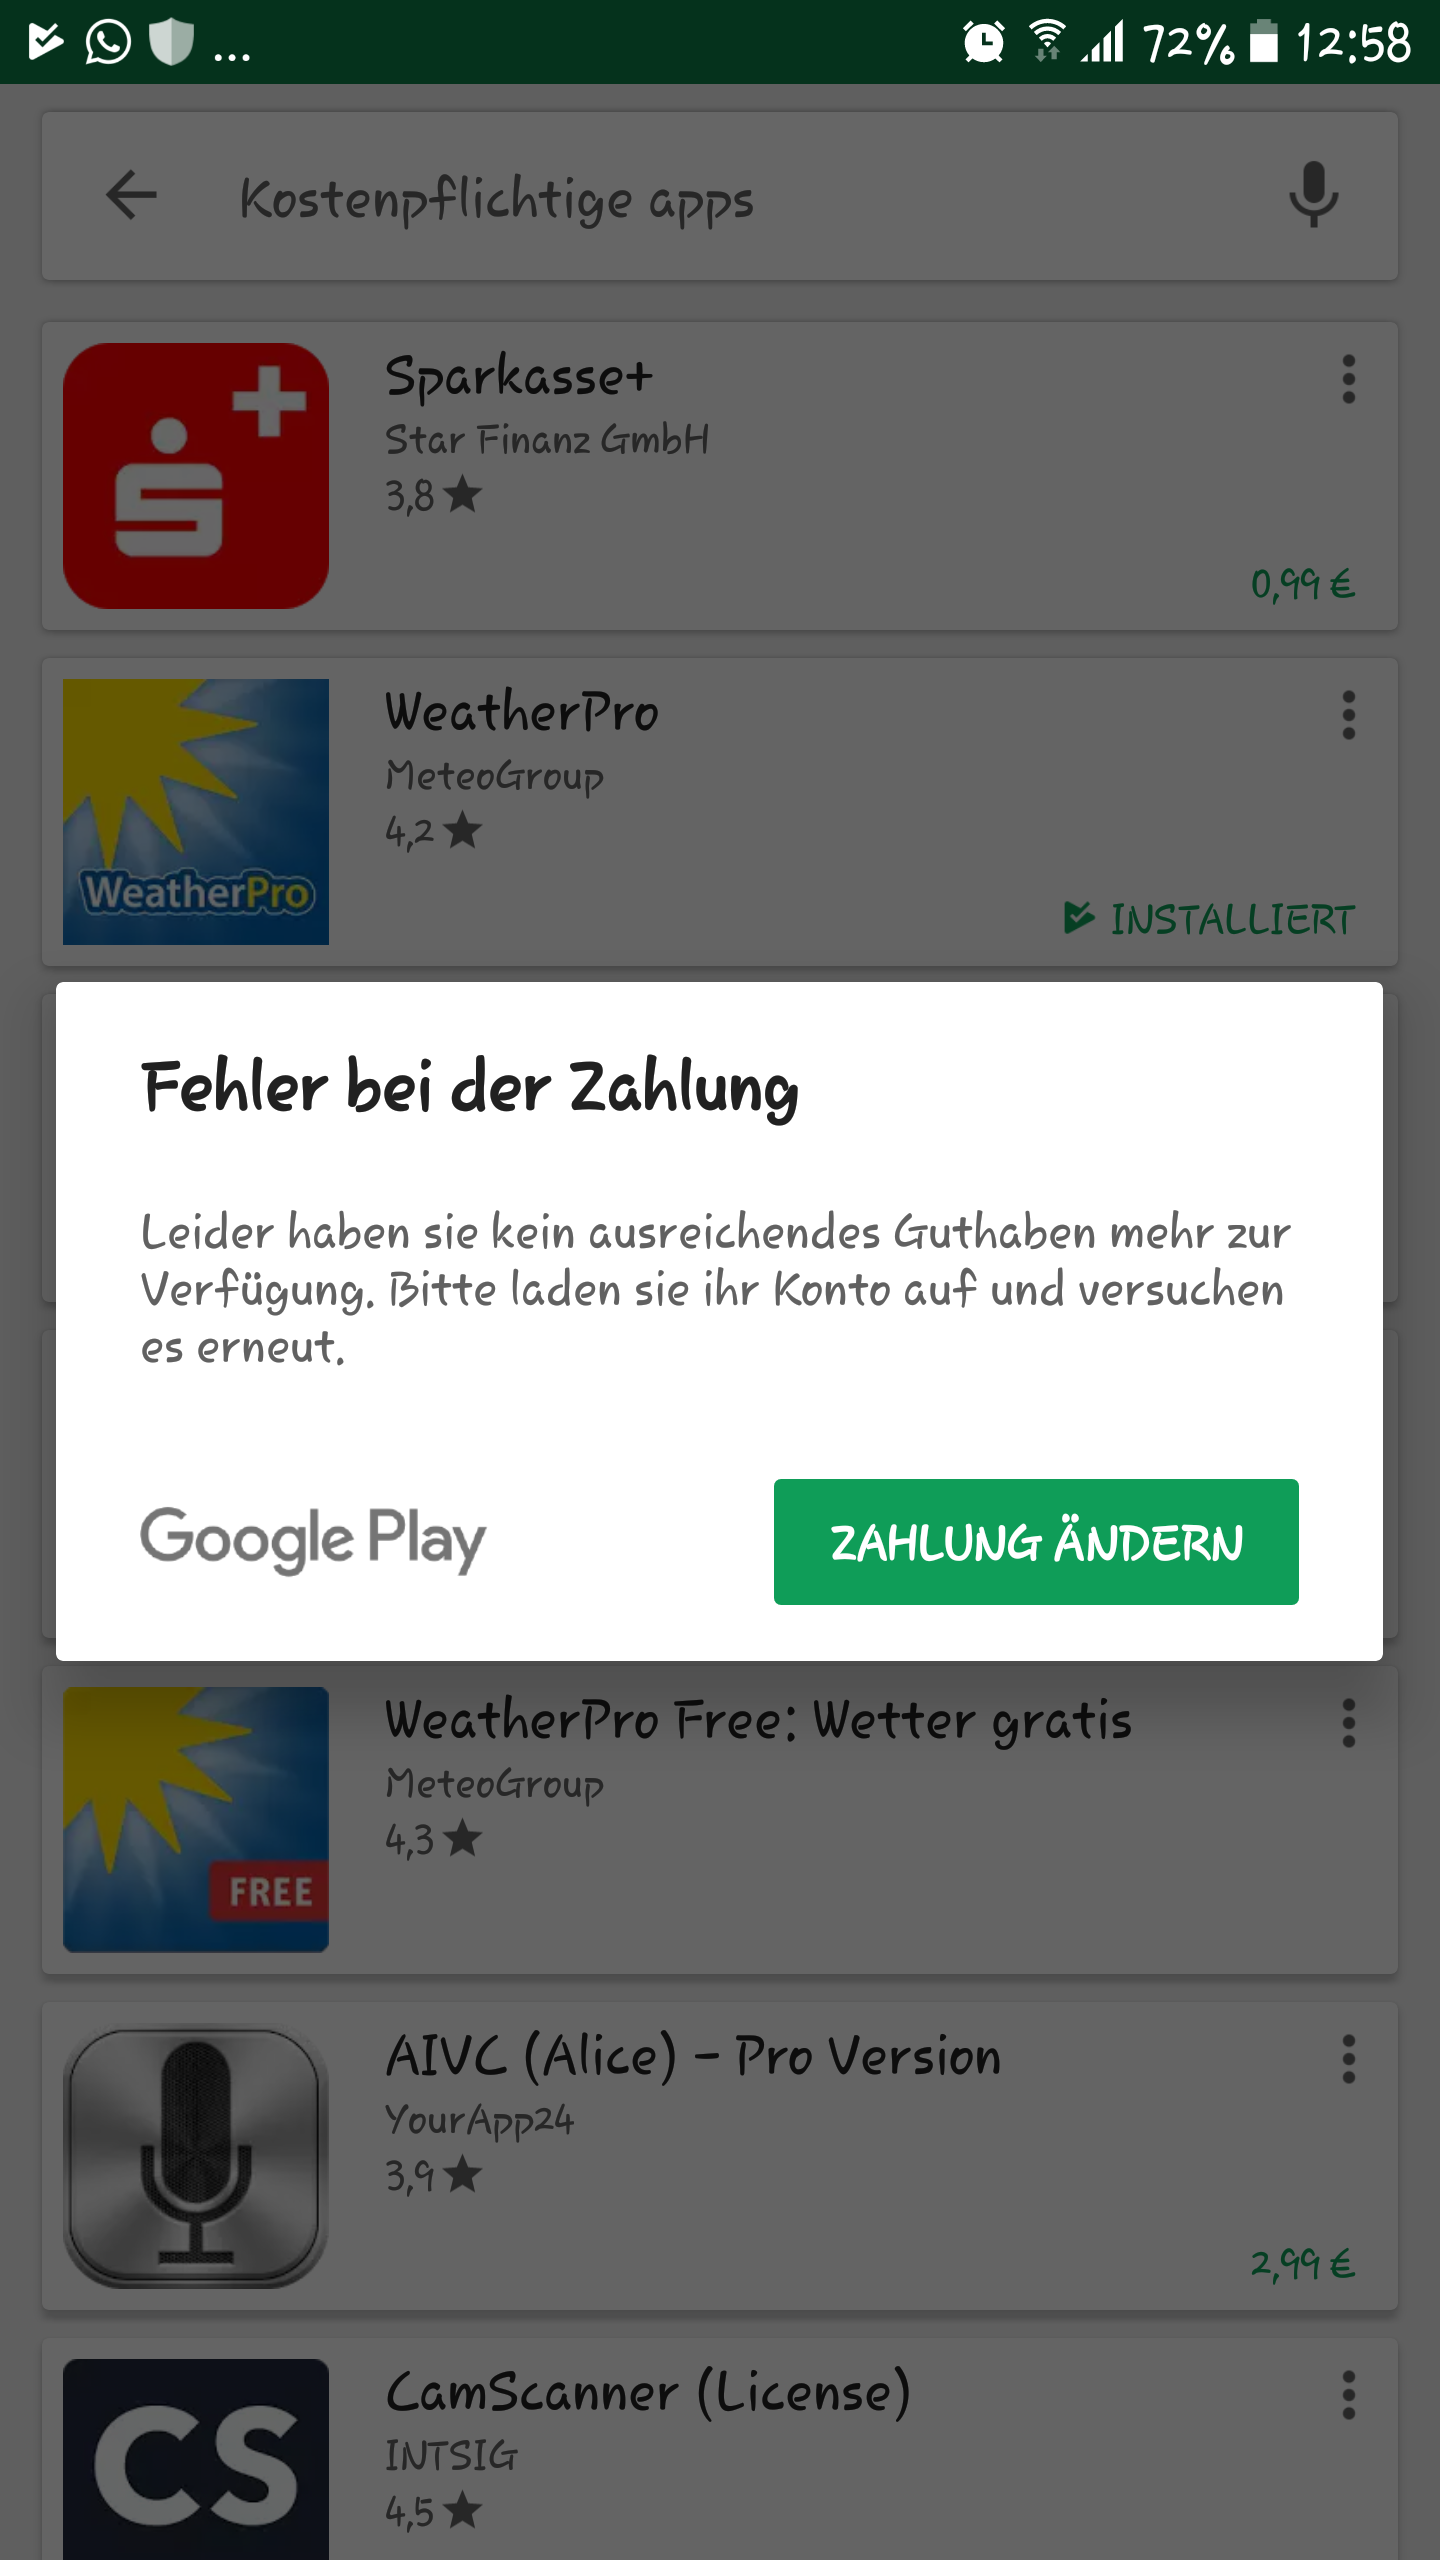 Google Play Zahlung